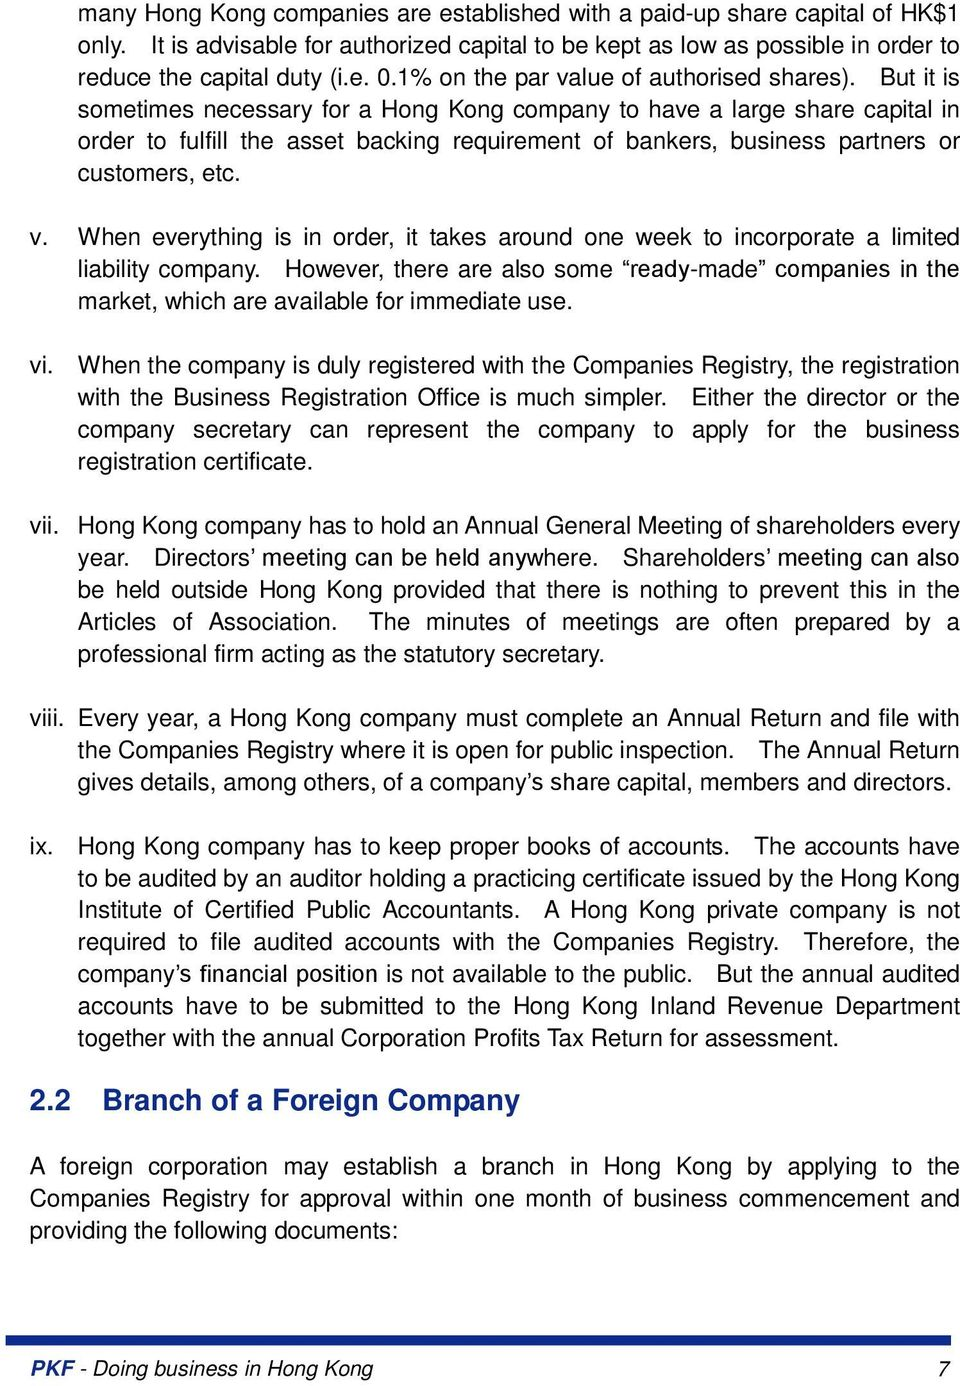 But it is sometimes necessary for a Hong Kong company to have a large share capital in order to fulfill the asset backing requirement of bankers, business partners or customers, etc. v.